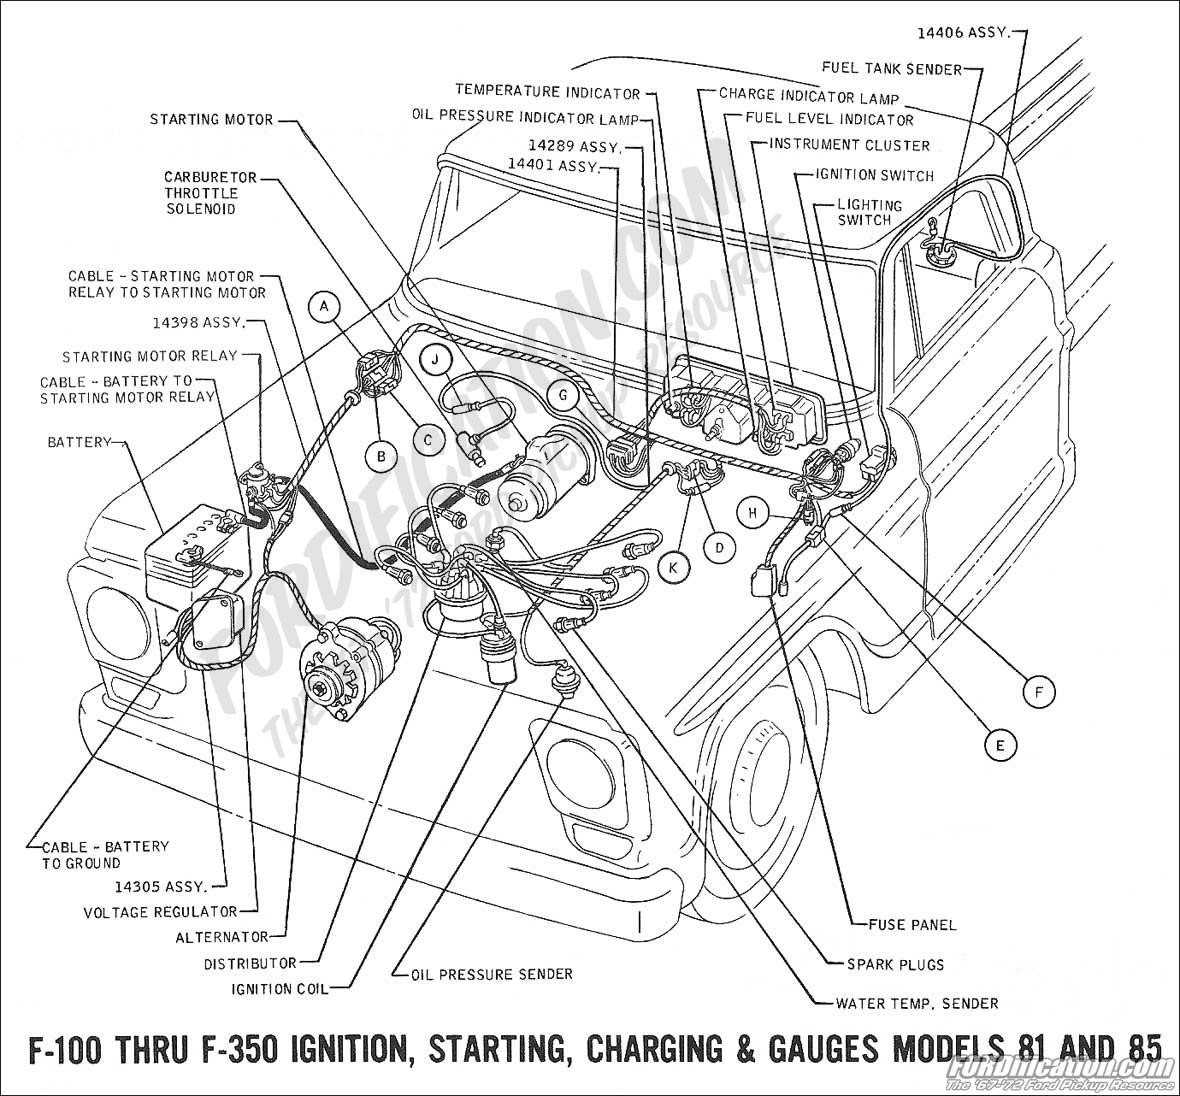 1969 F100 Wiring Harness Improve Diagram Ford Lincoln Diagrams Free Chevy Truck Turn Signal Get